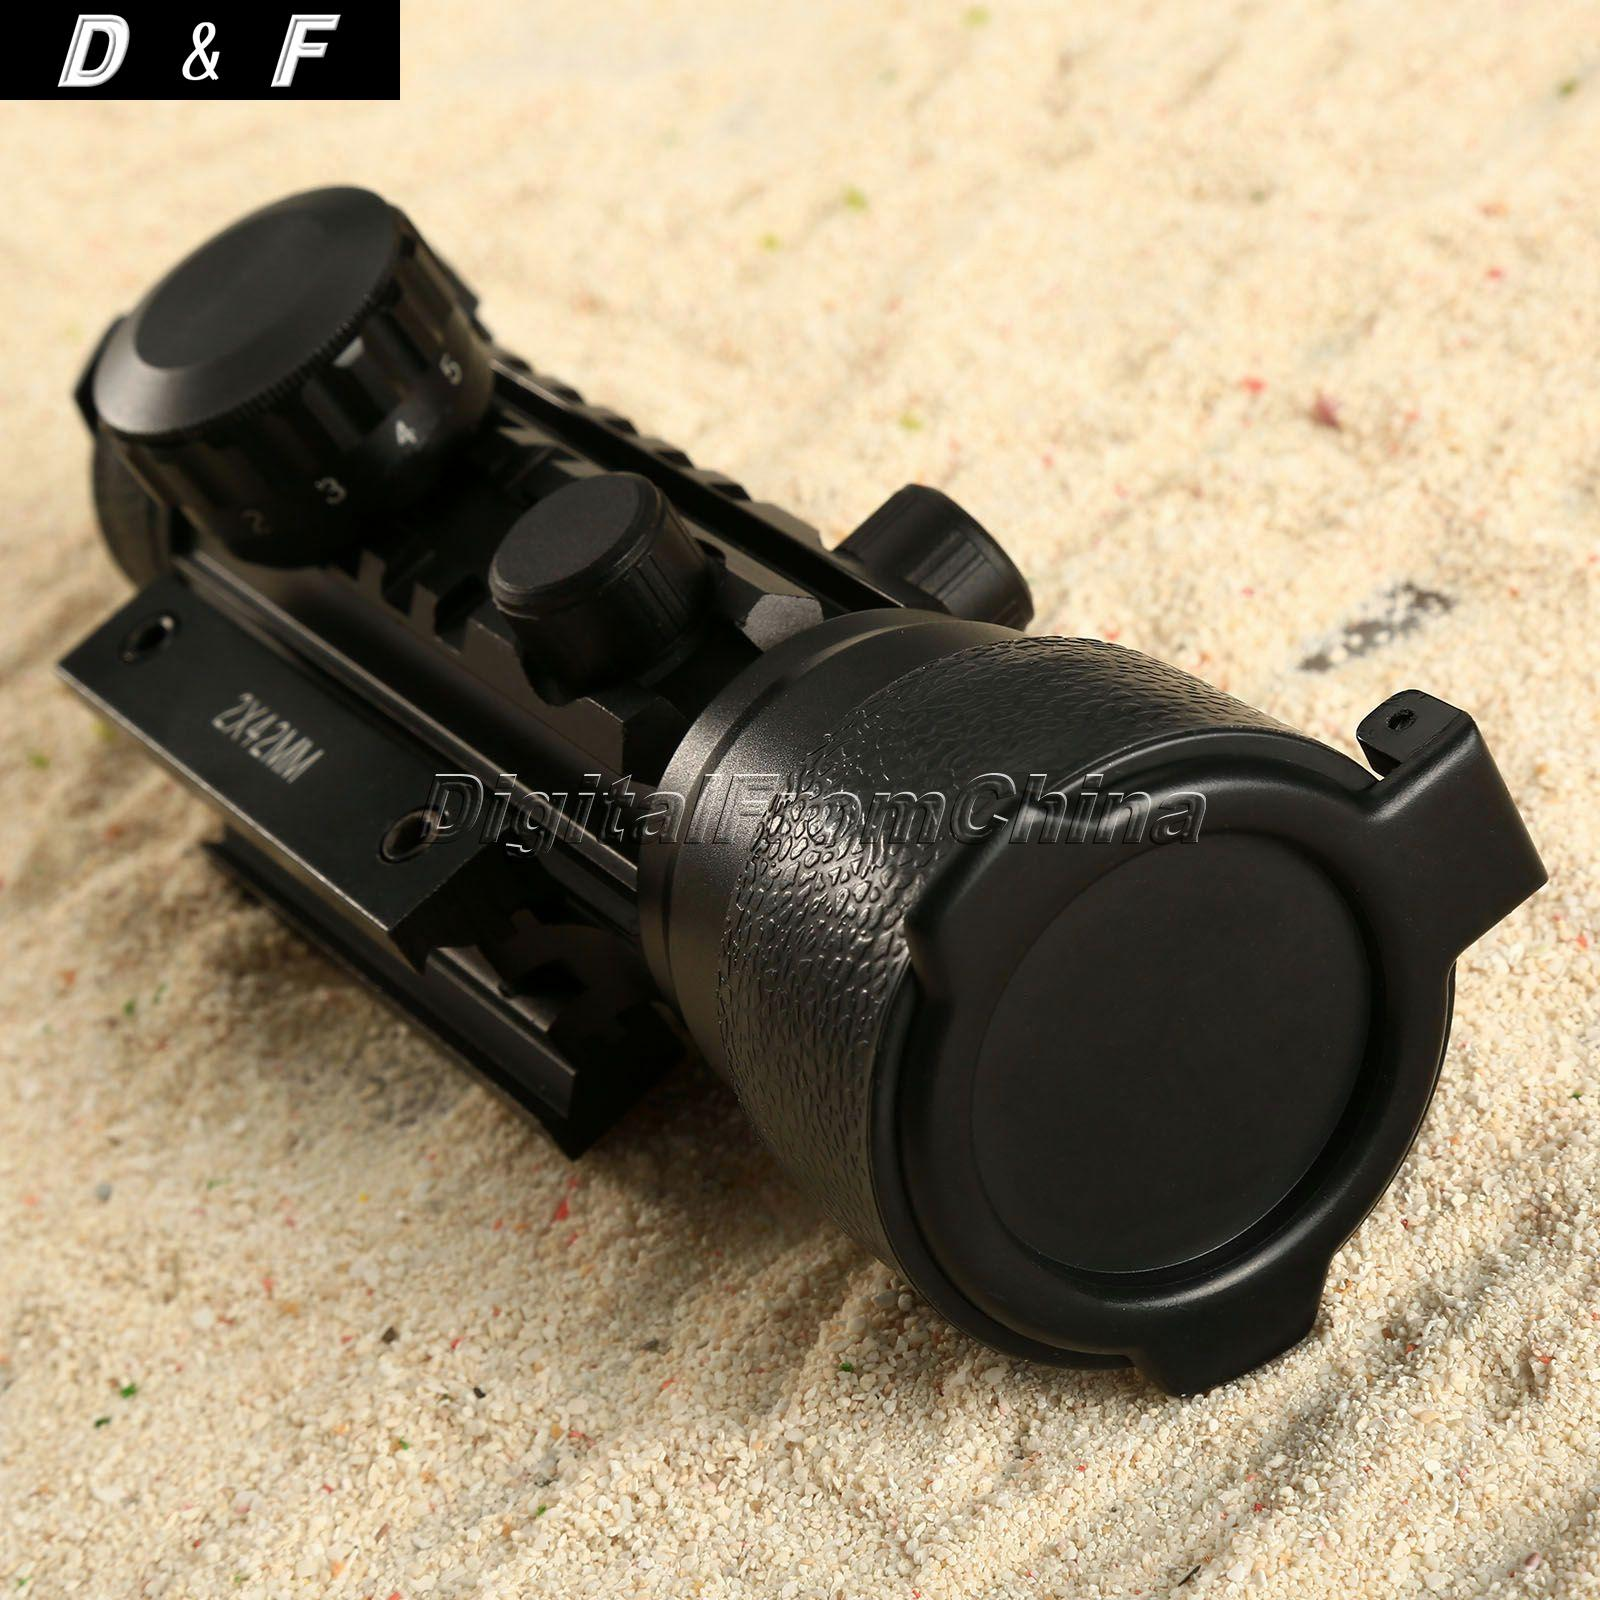 New Arrival 2x42 Red Green Dot Scope Sight 20mm Weaver Mount Rail F Rifle For Hunting accu new quick release heighten mount for 20mm rifle weaver rails black